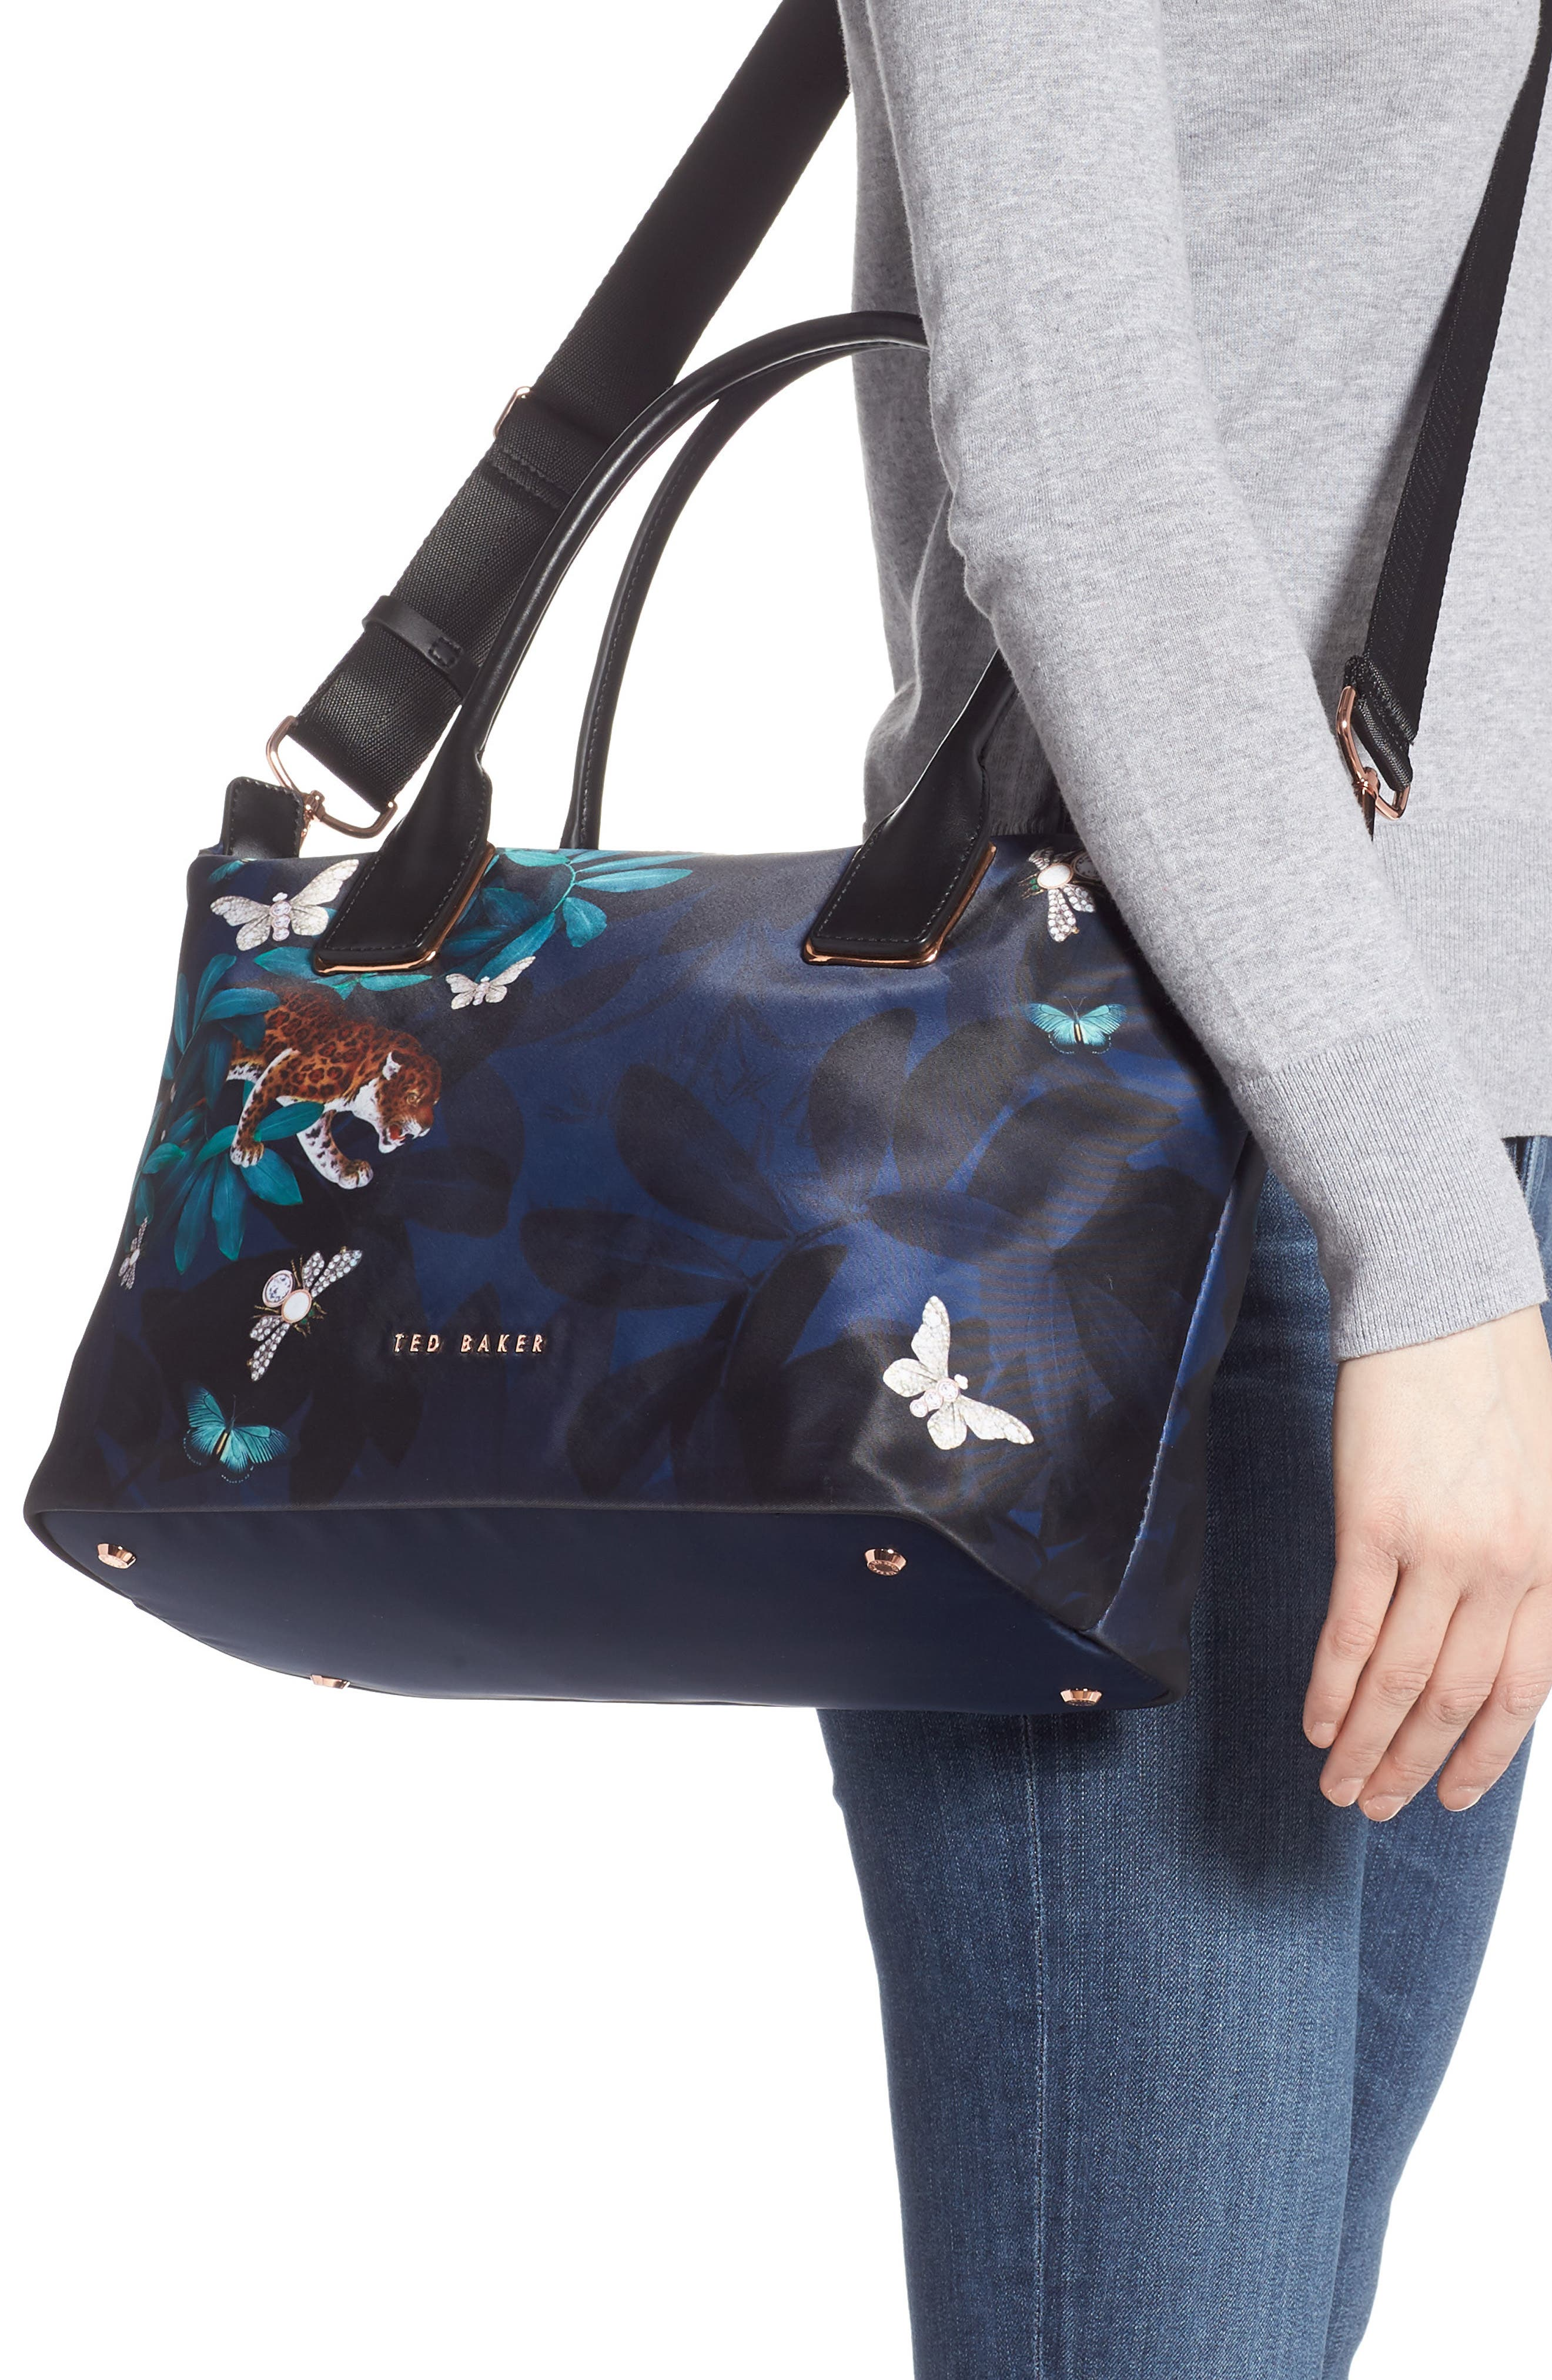 c07c2ac539fd2e Ted Baker London Tote Bags for Women  Leather